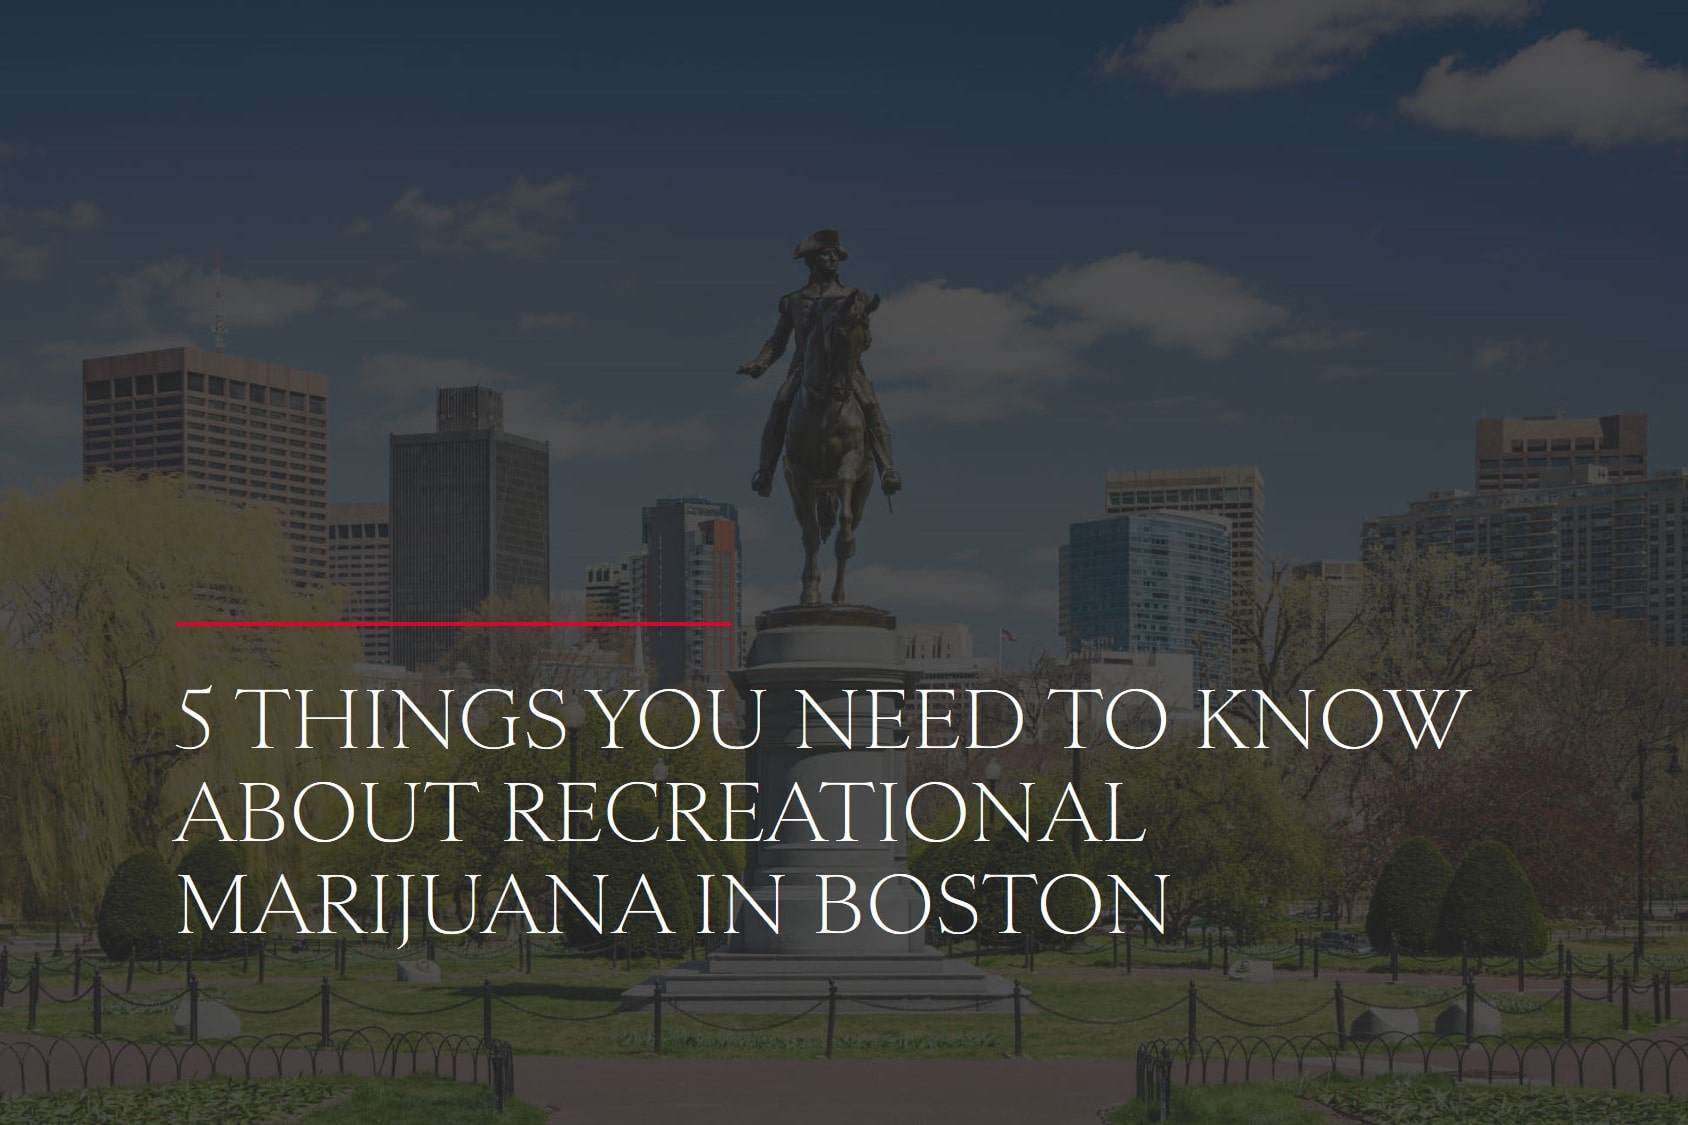 5 Things You Need to Know About Recreational Marijuana in Boston